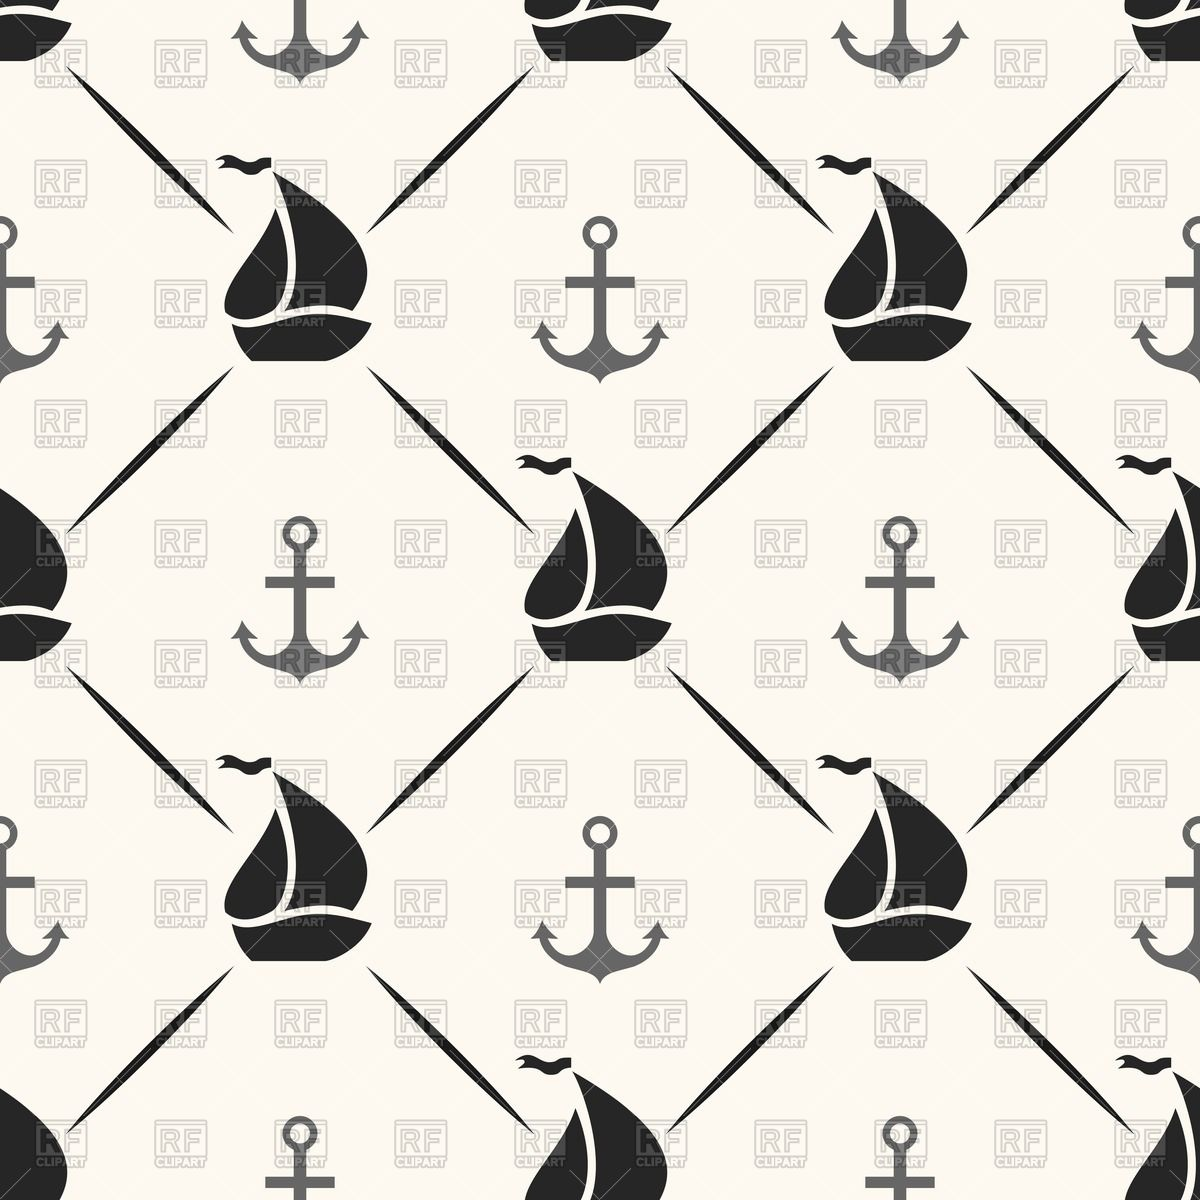 1200x1200 Seamless Wallpaper With Pattern Of Anchor And Sailboat Silhouettes